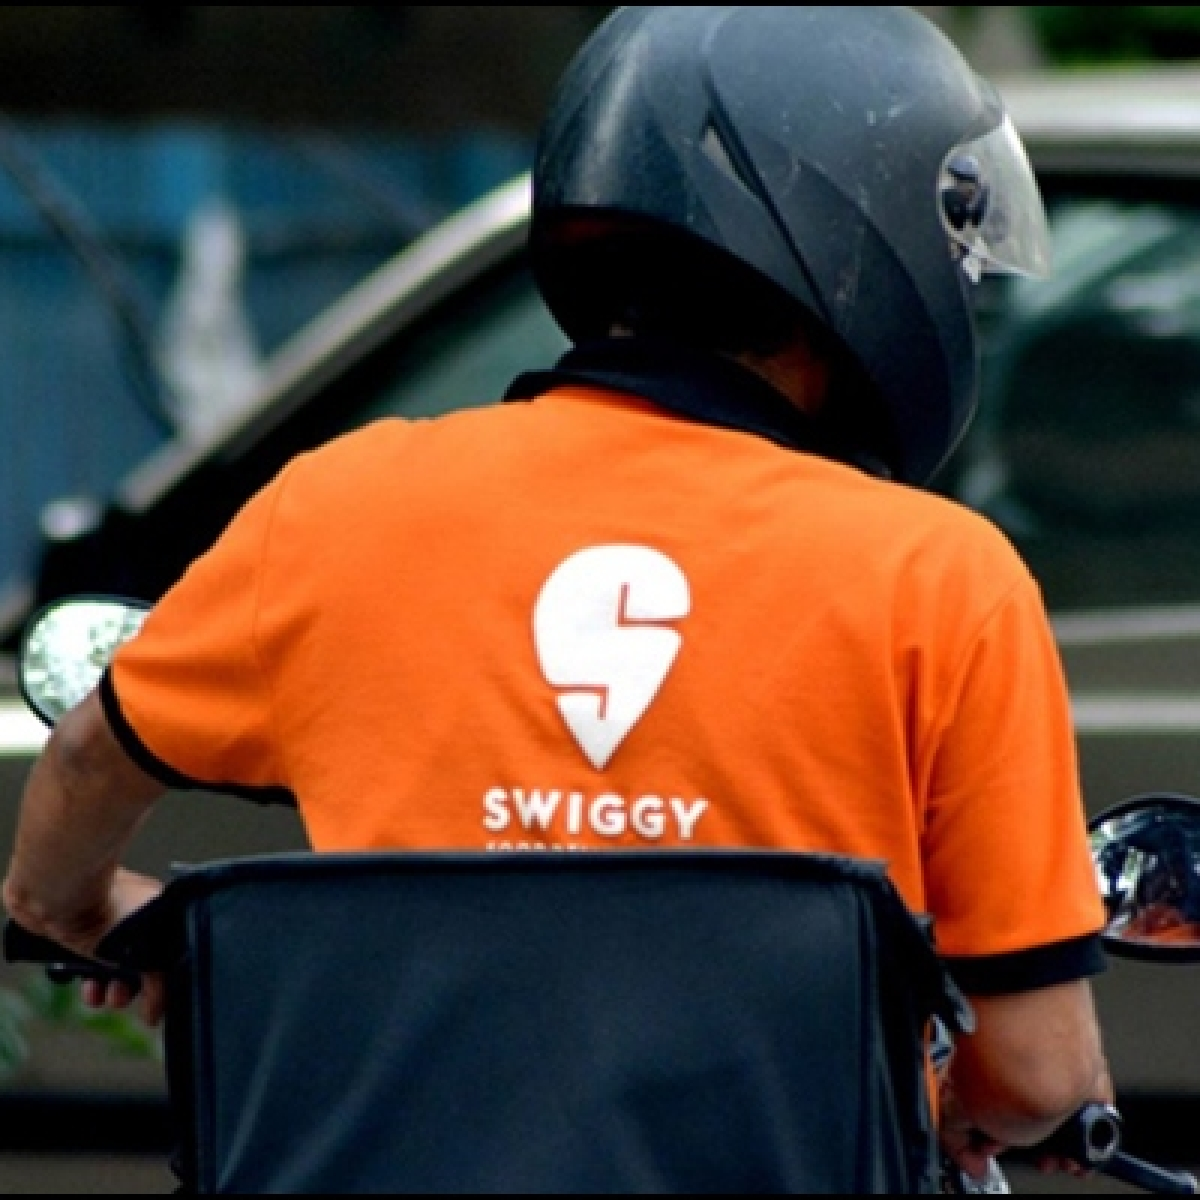 Food delivery service Swiggy goes down in several areas in Mumbai